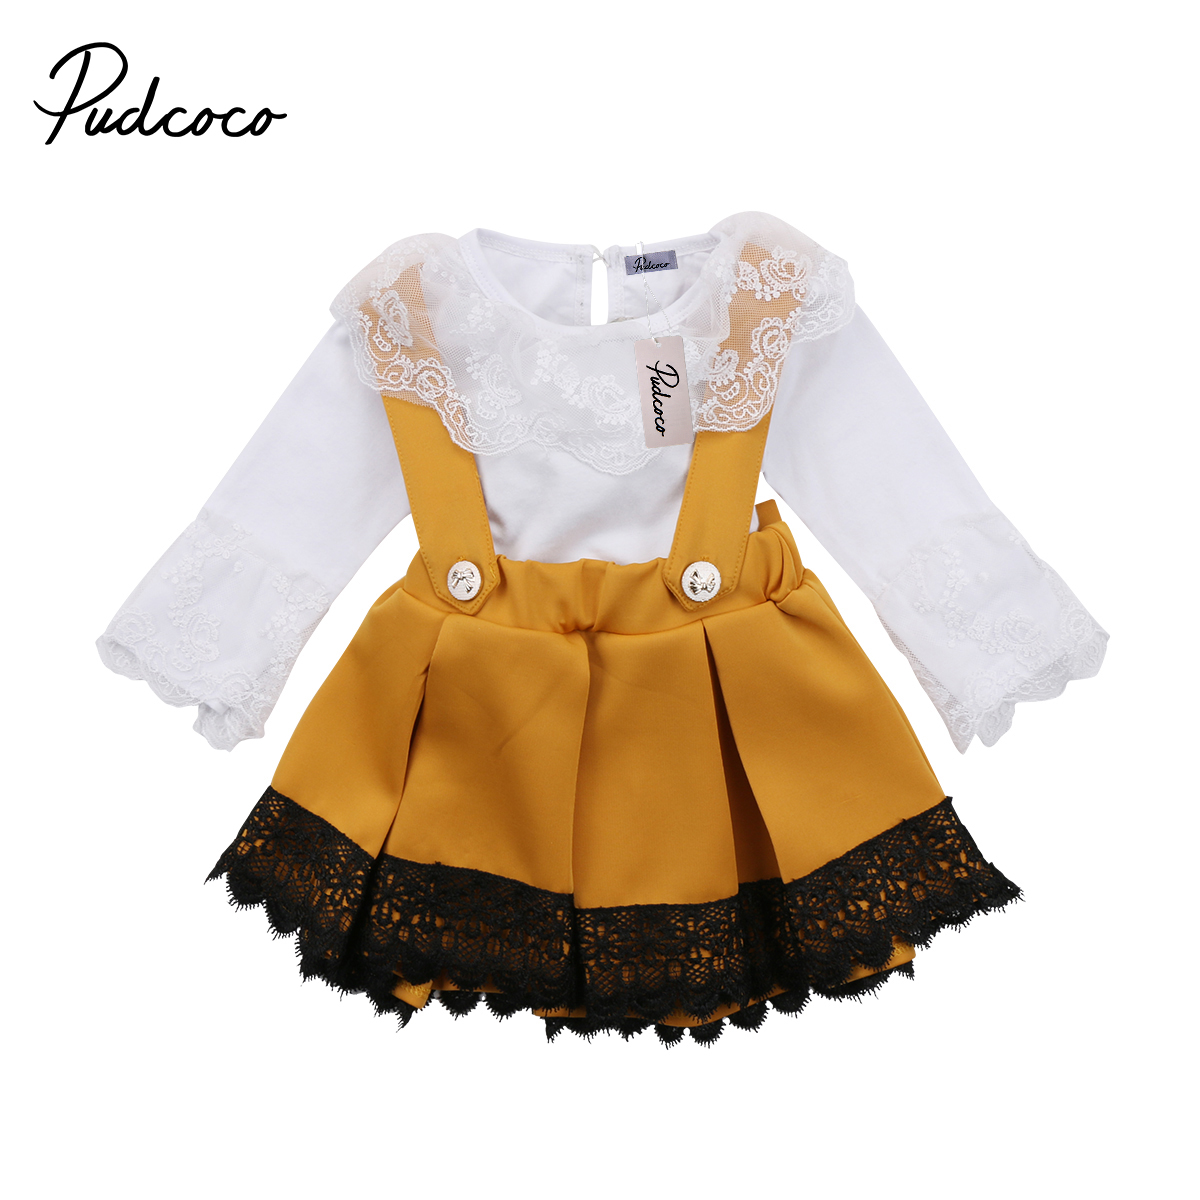 2018 Brand New Newborn Toddler Infant Kid Baby Girl Lace Jumpsuit Romper Princess Party Skirt 2Pc Outfit Set Long Sleeve Clothes cute newborn baby kids girls lace floral jumpsuit romper outfit clothes infant toddler girl rompers summer pink lovely clothing